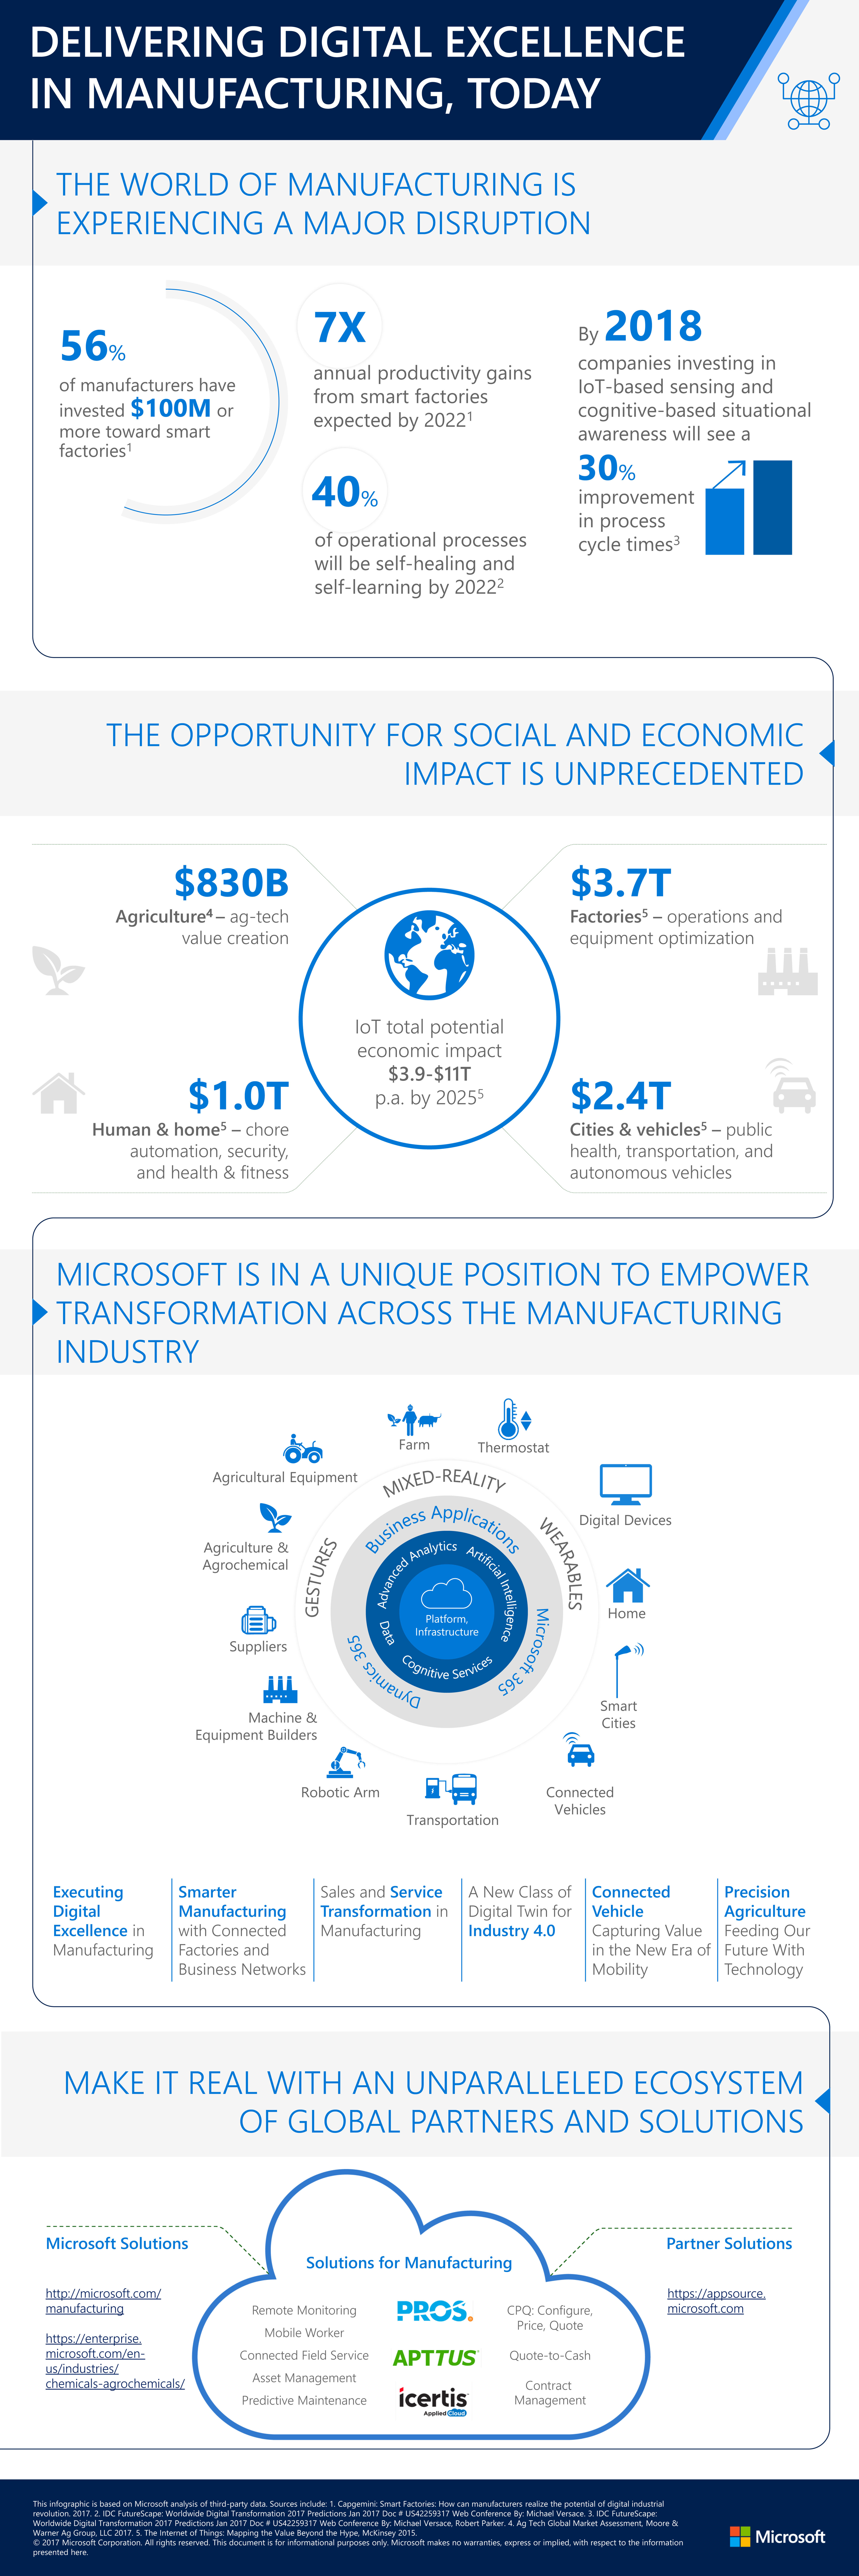 Delivering digital excellence in manufacturing, today- infographic